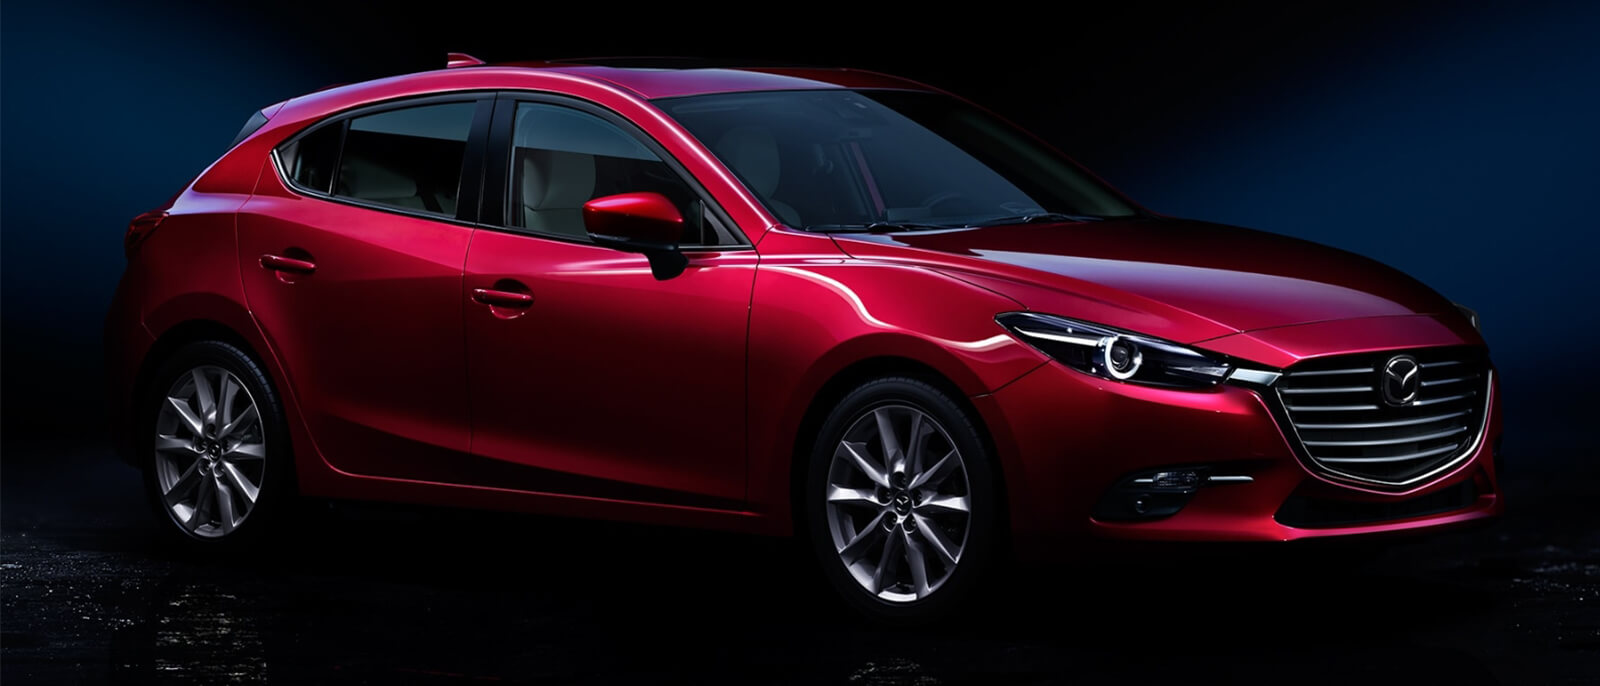 2017 mazda mazda3 reviews prices and pictures us news. Black Bedroom Furniture Sets. Home Design Ideas